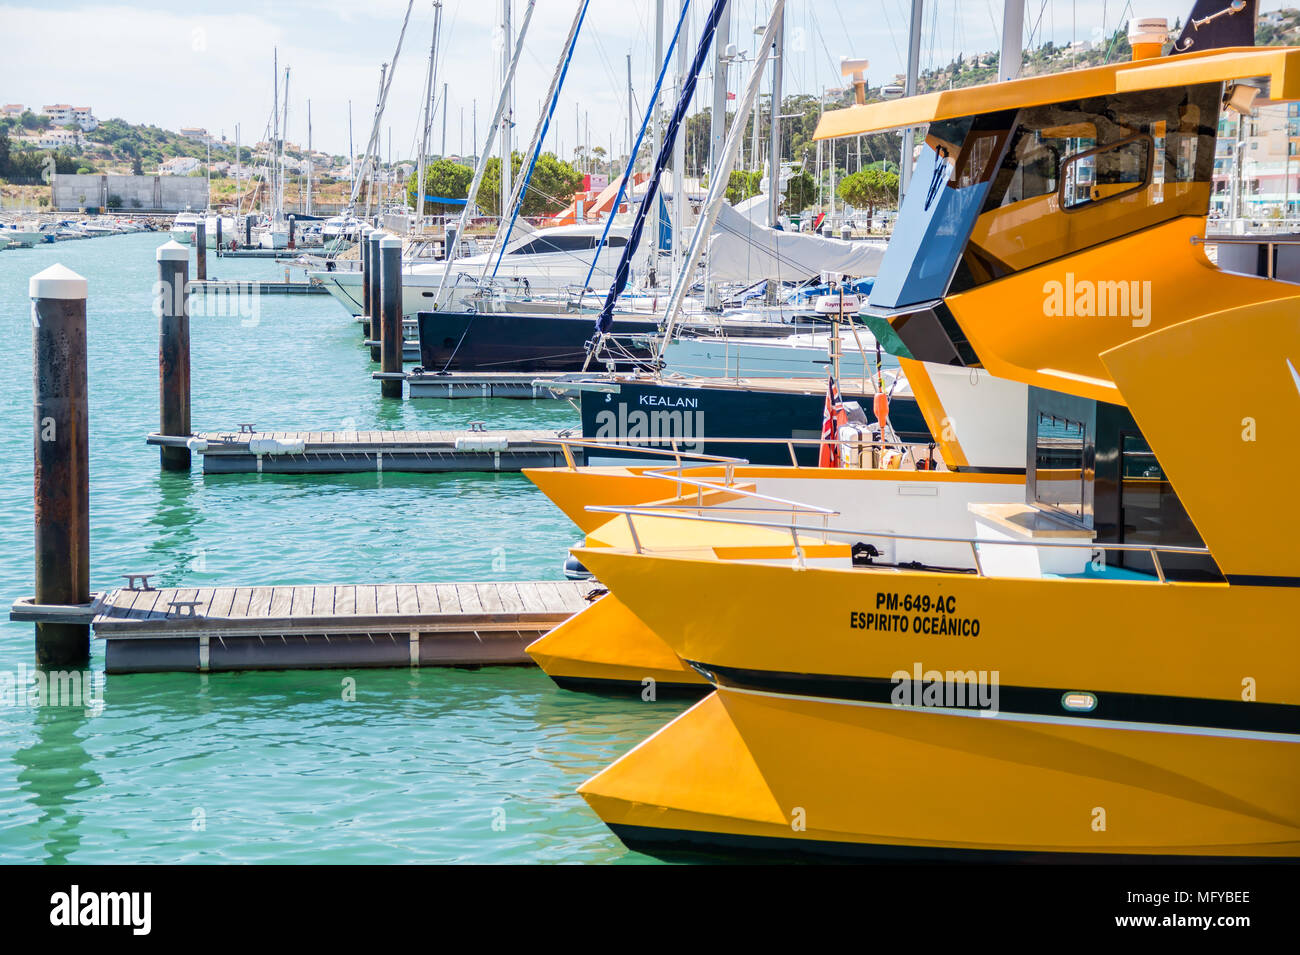 Yellow dolphin watching coastline cruise catamaran tied in the bay of Marina de Albufeira, Albufeira Algarve, Portugal. - Stock Image